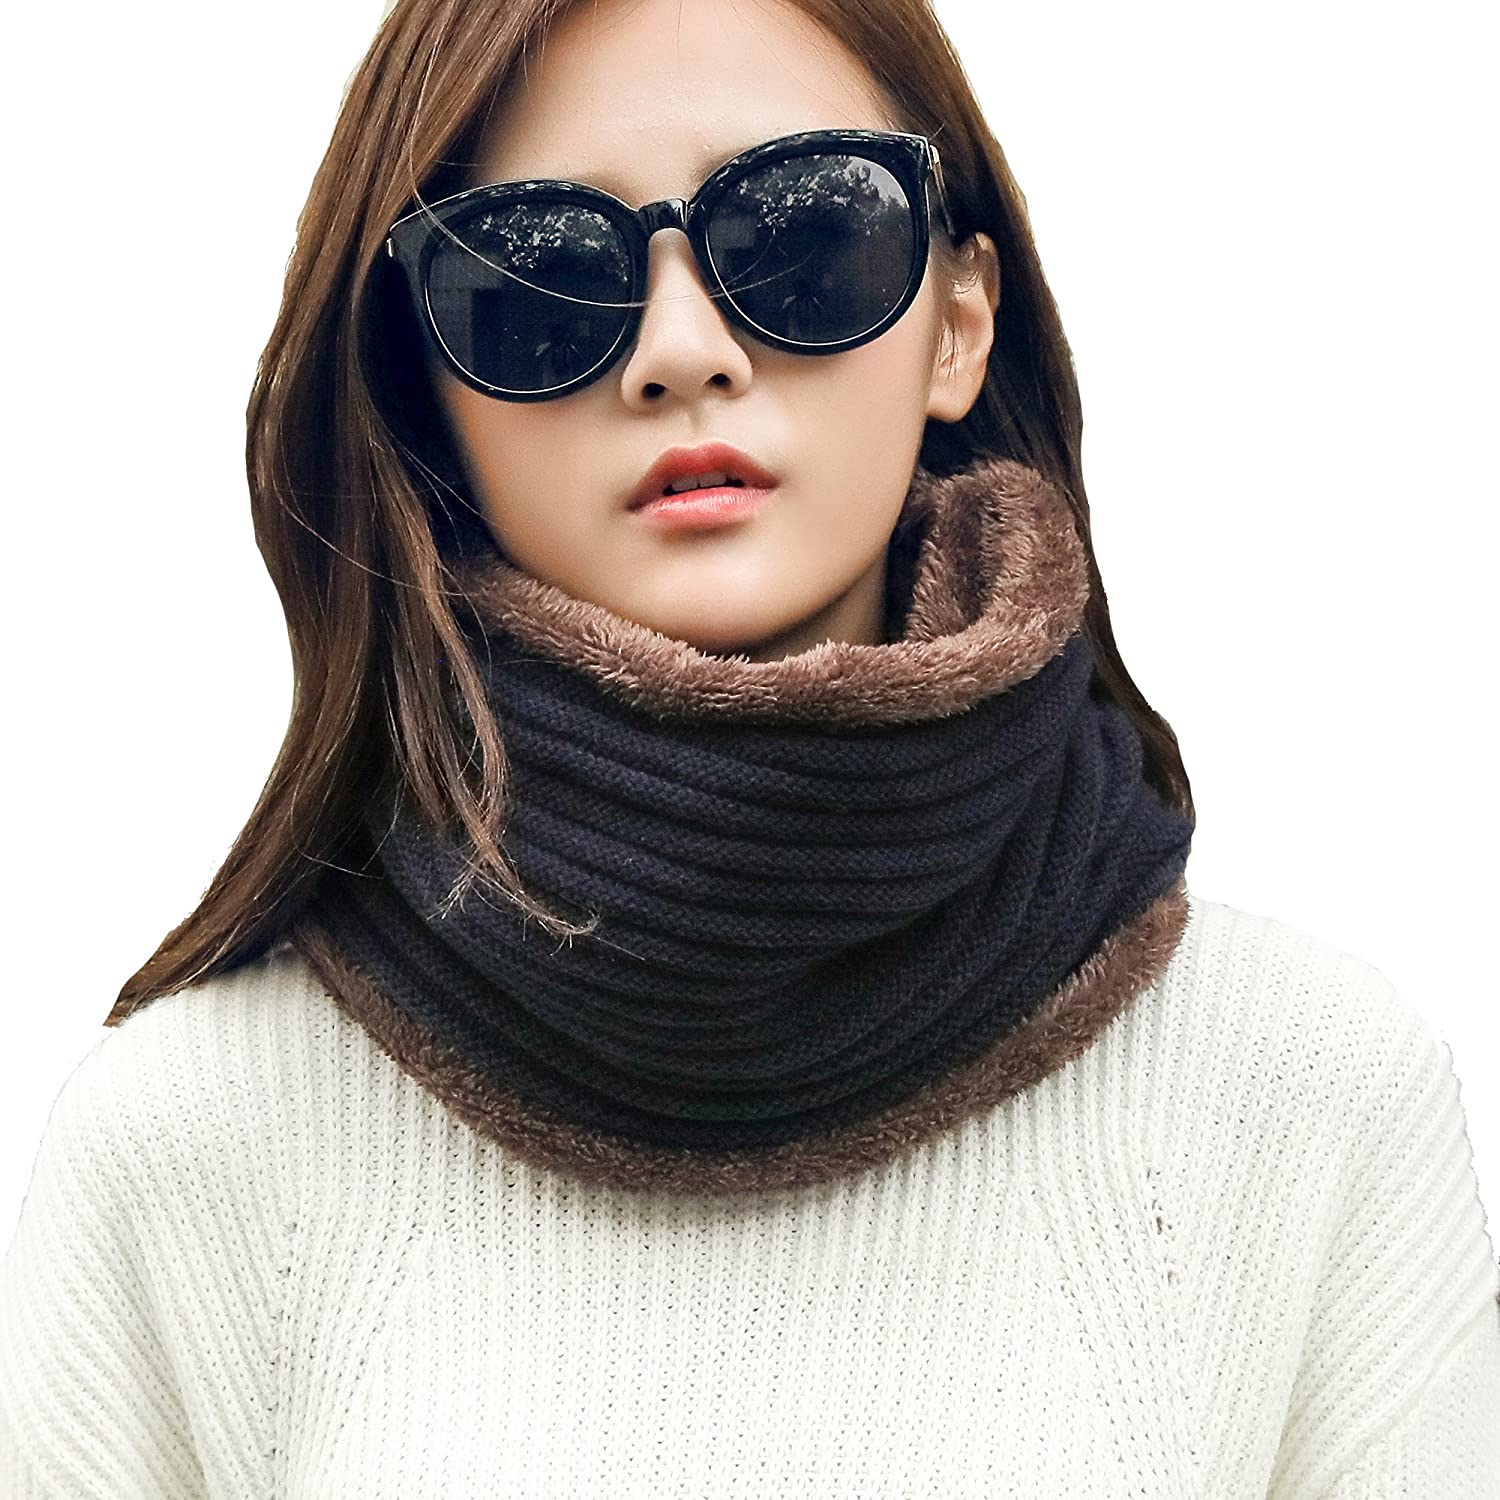 Leories Winter Neck Warmer Fleece Lined Infinity Scarf Thicken Windproof Scarf Face Mask for Women and Men